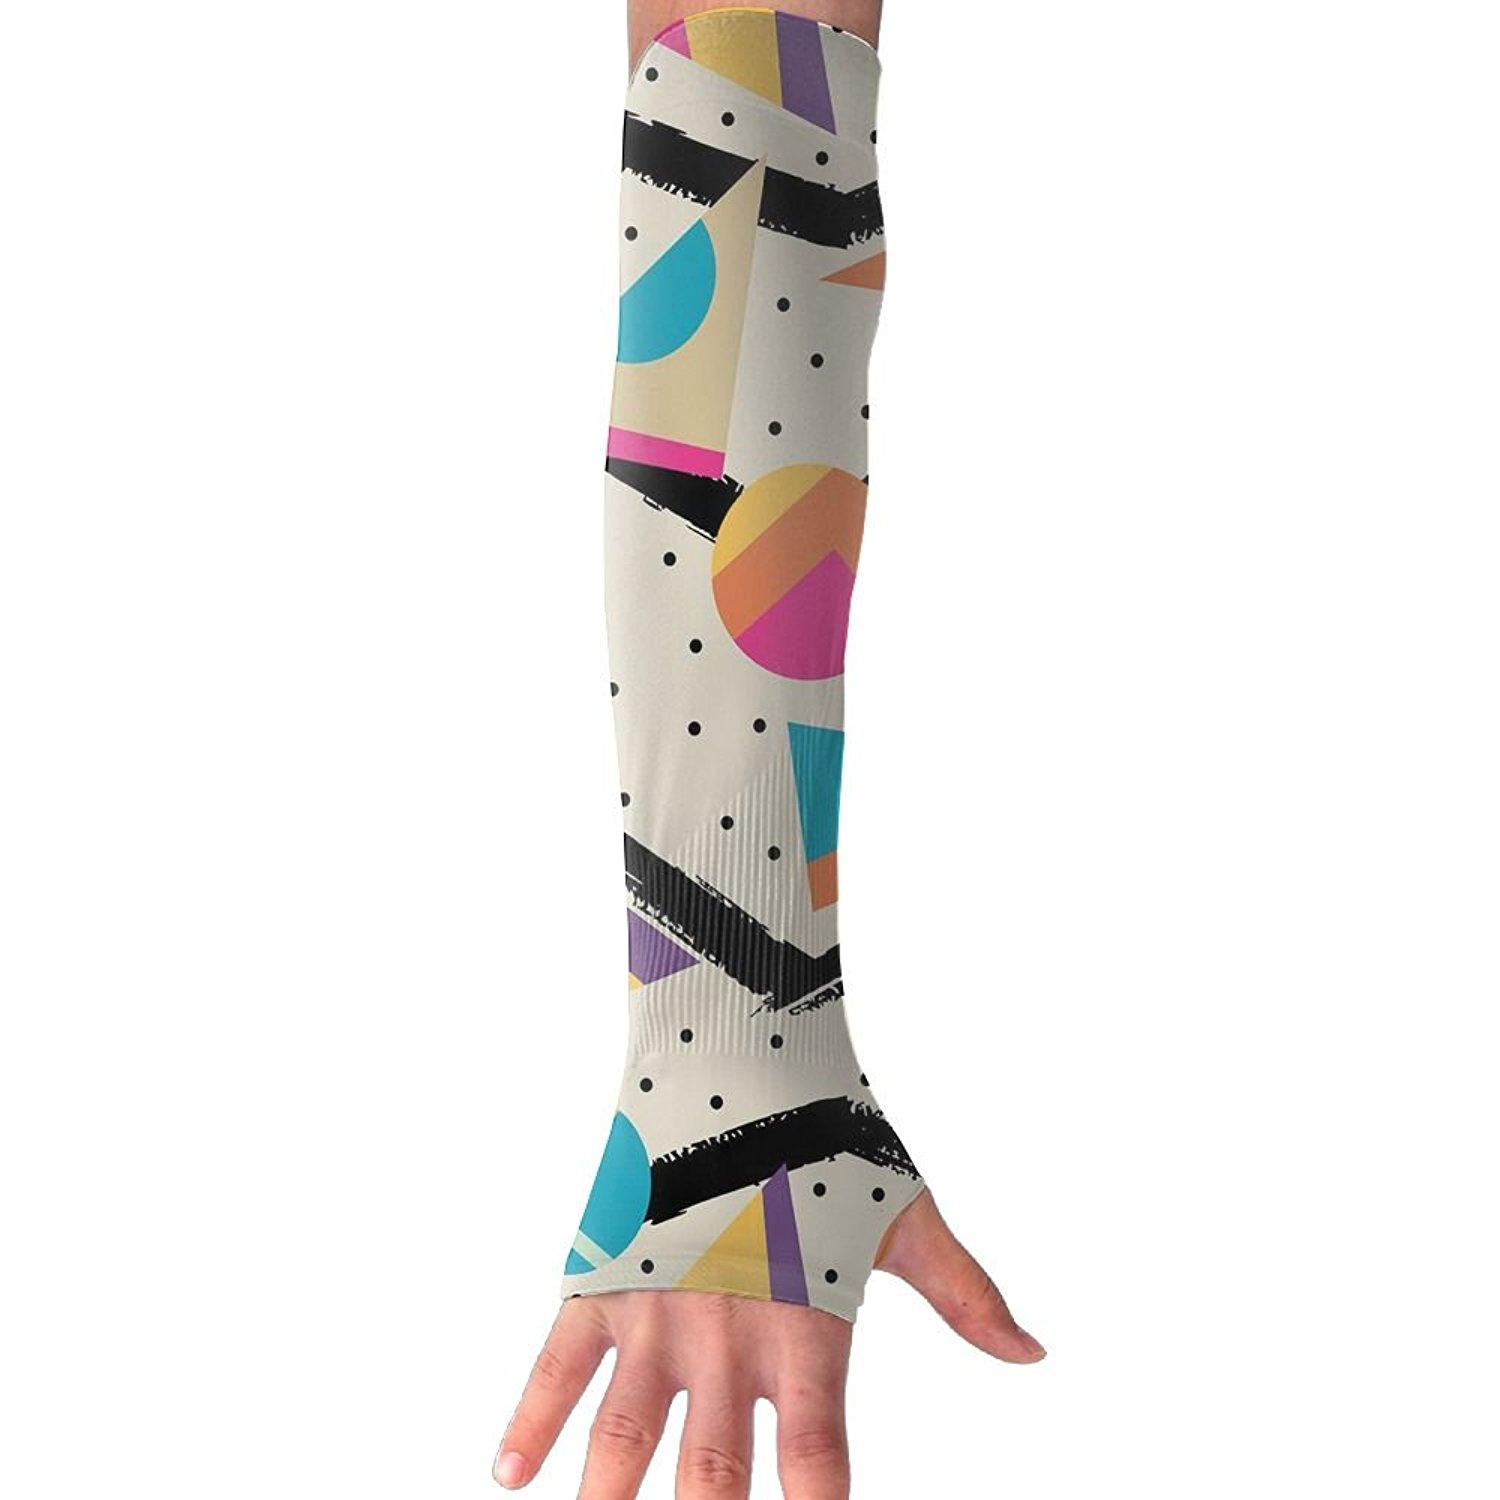 Men's Arm Warmers Hot Sale 1pc Unisex Fashion Summer Elastic Temporary Arm Sleeves Sunscreen Arm Warmer Cycling Sports Tattoo Sleeves Uv Cool Arm Sleeves Men's Accessories